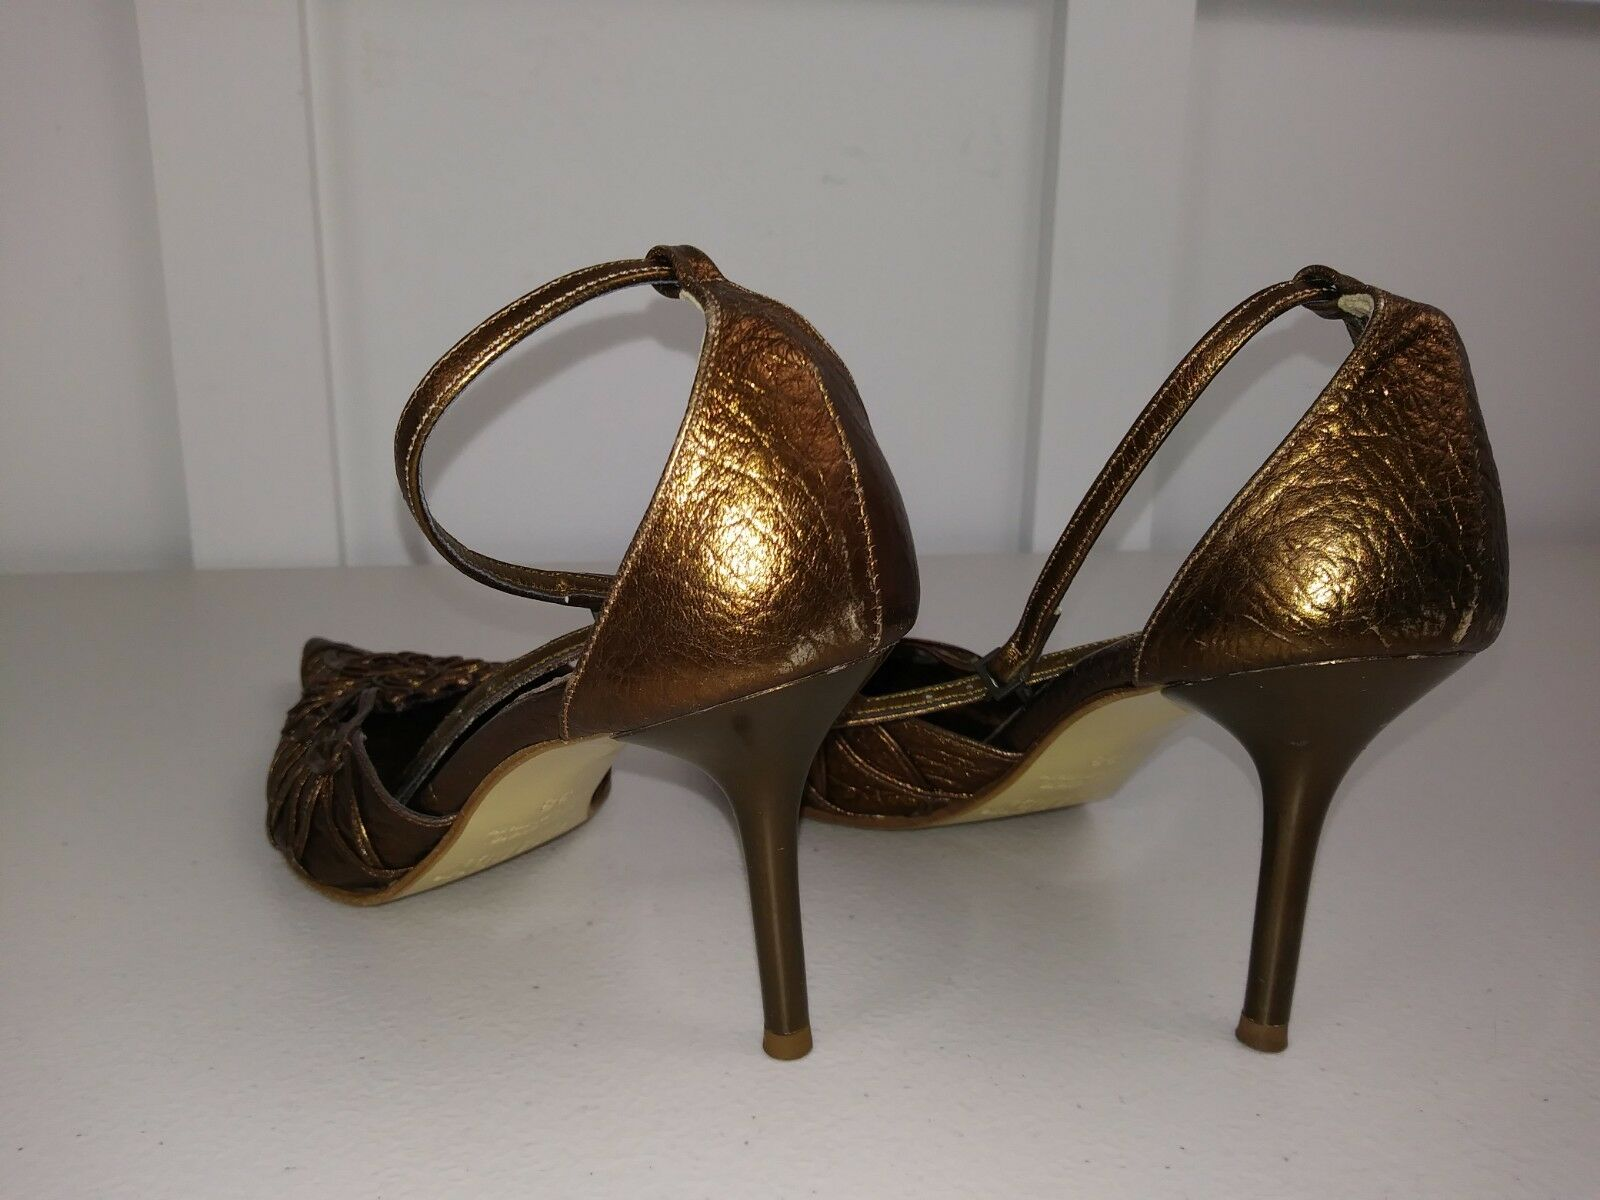 SHADEY 8 METALLIC METALLIC METALLIC gold BRONZE 3  HEAL POINT TOE SLINGBACK LADIES PUMP MADE ITALY ec2888